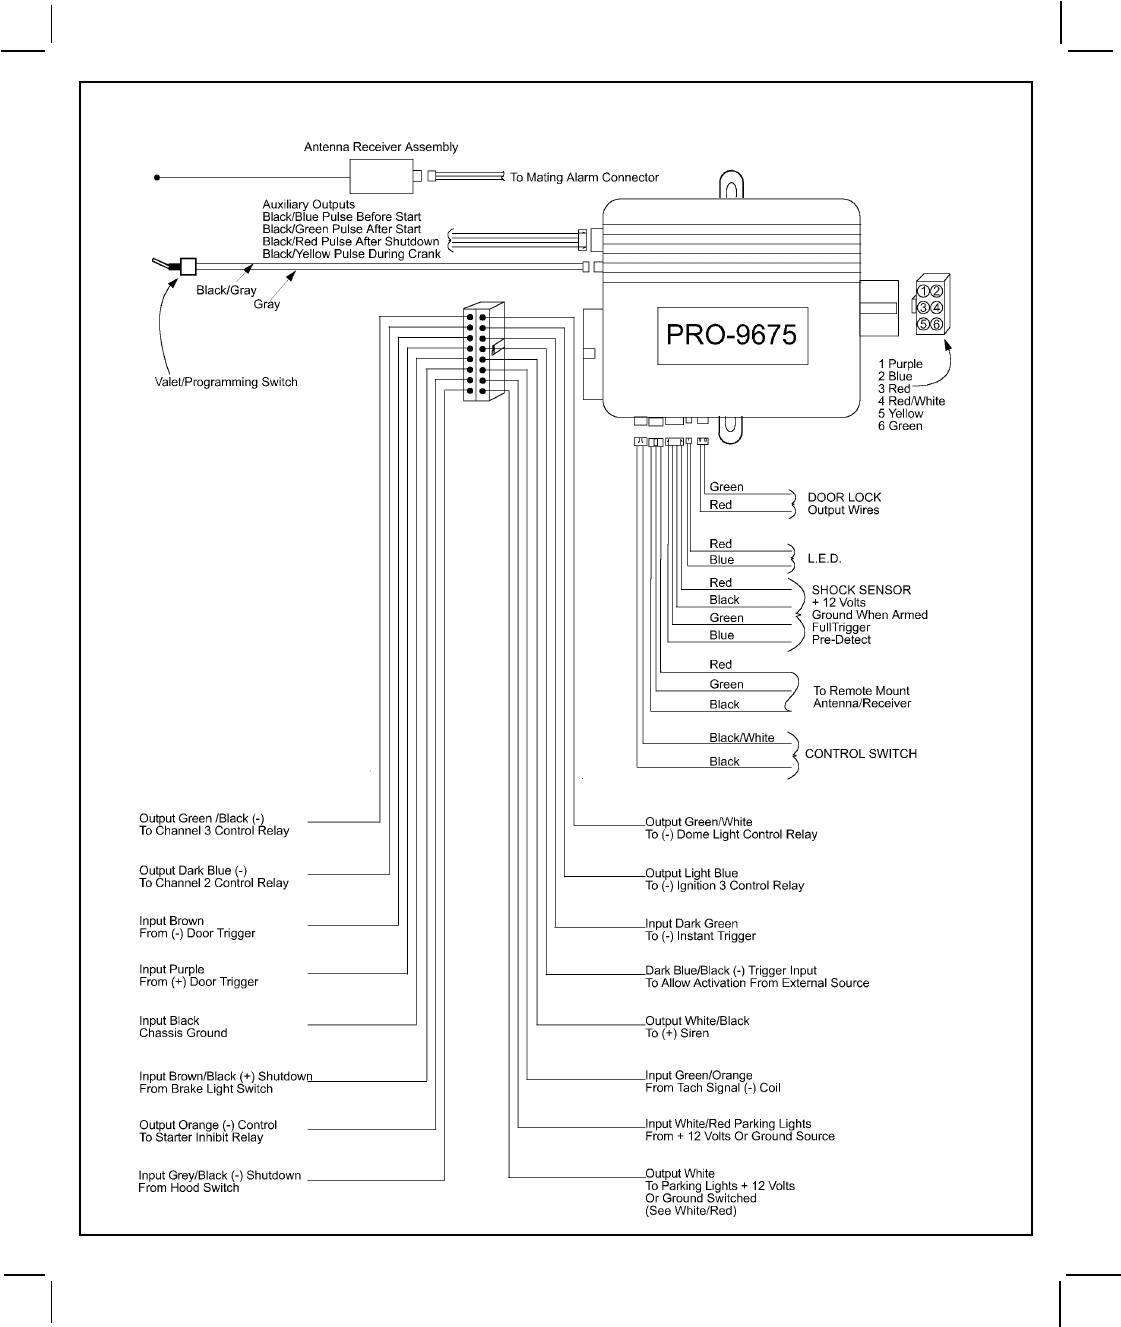 63de61ef f929 4813 ac08 919f46a5cd26 bg16 page 22 of audiovox automobile alarm pro 9675ft user guide audiovox car alarm wiring diagram at gsmx.co